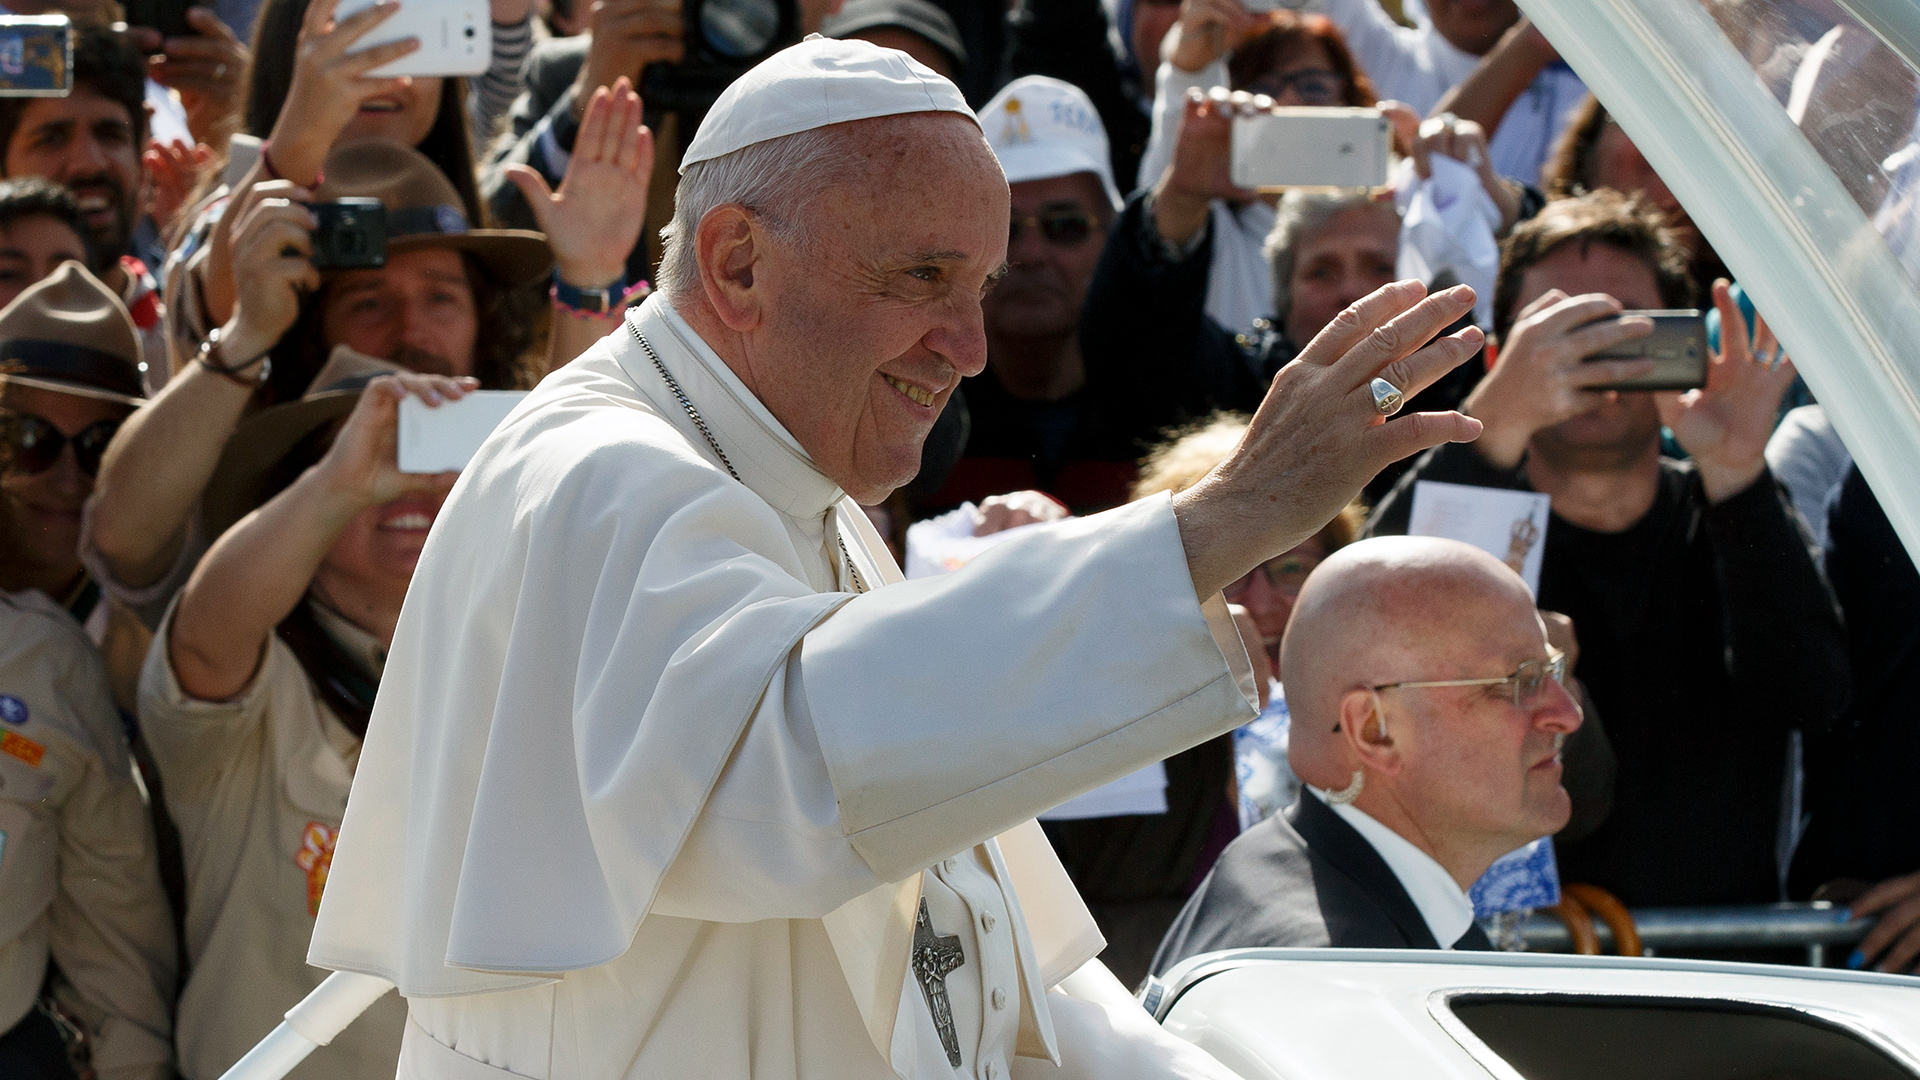 Pope Francis in Popemobile-159532.jpg53061653